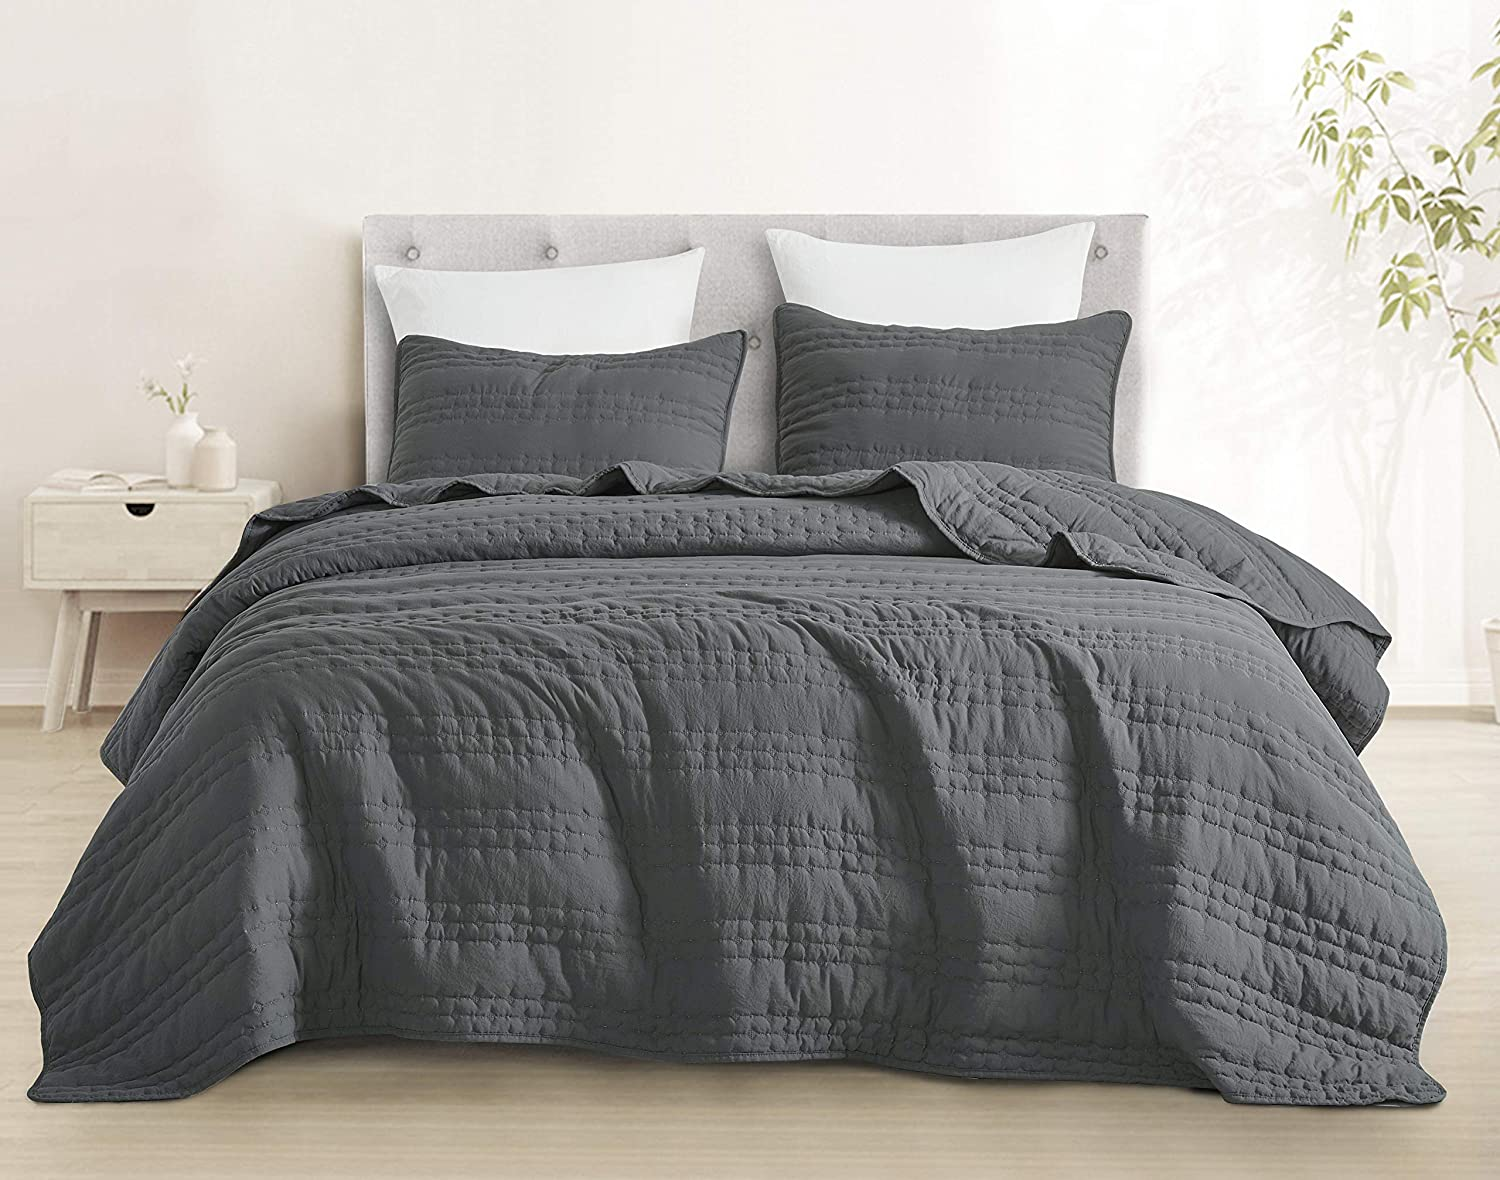 SupraSoft Stonish Stonewashed Set Quilt 100% OFFicial mail order quality warranty